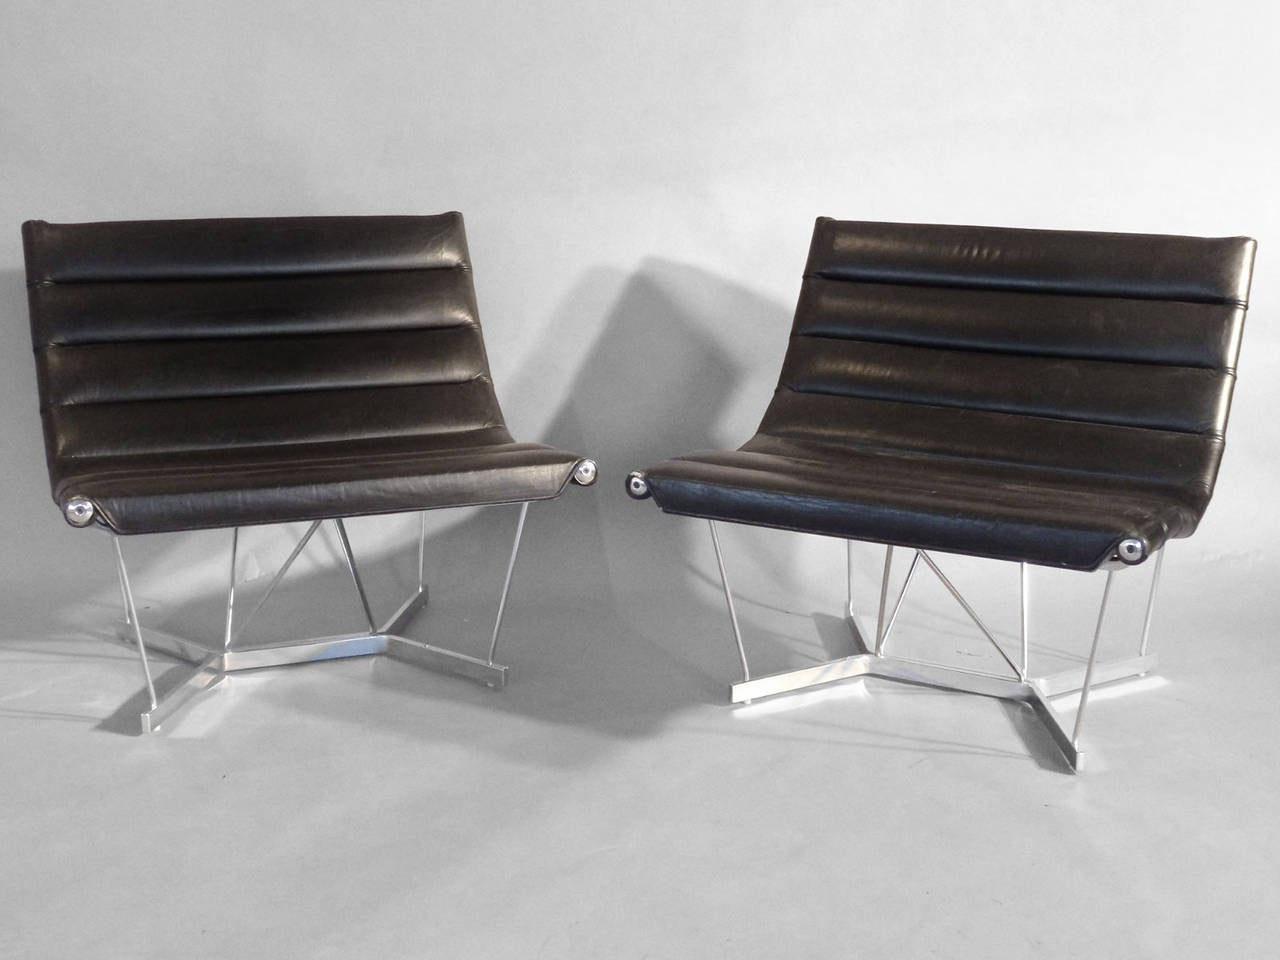 Scarce Pair of George Nelson Chrome Base Leather Catenary Chairs In Excellent Condition For Sale In Ferndale, MI